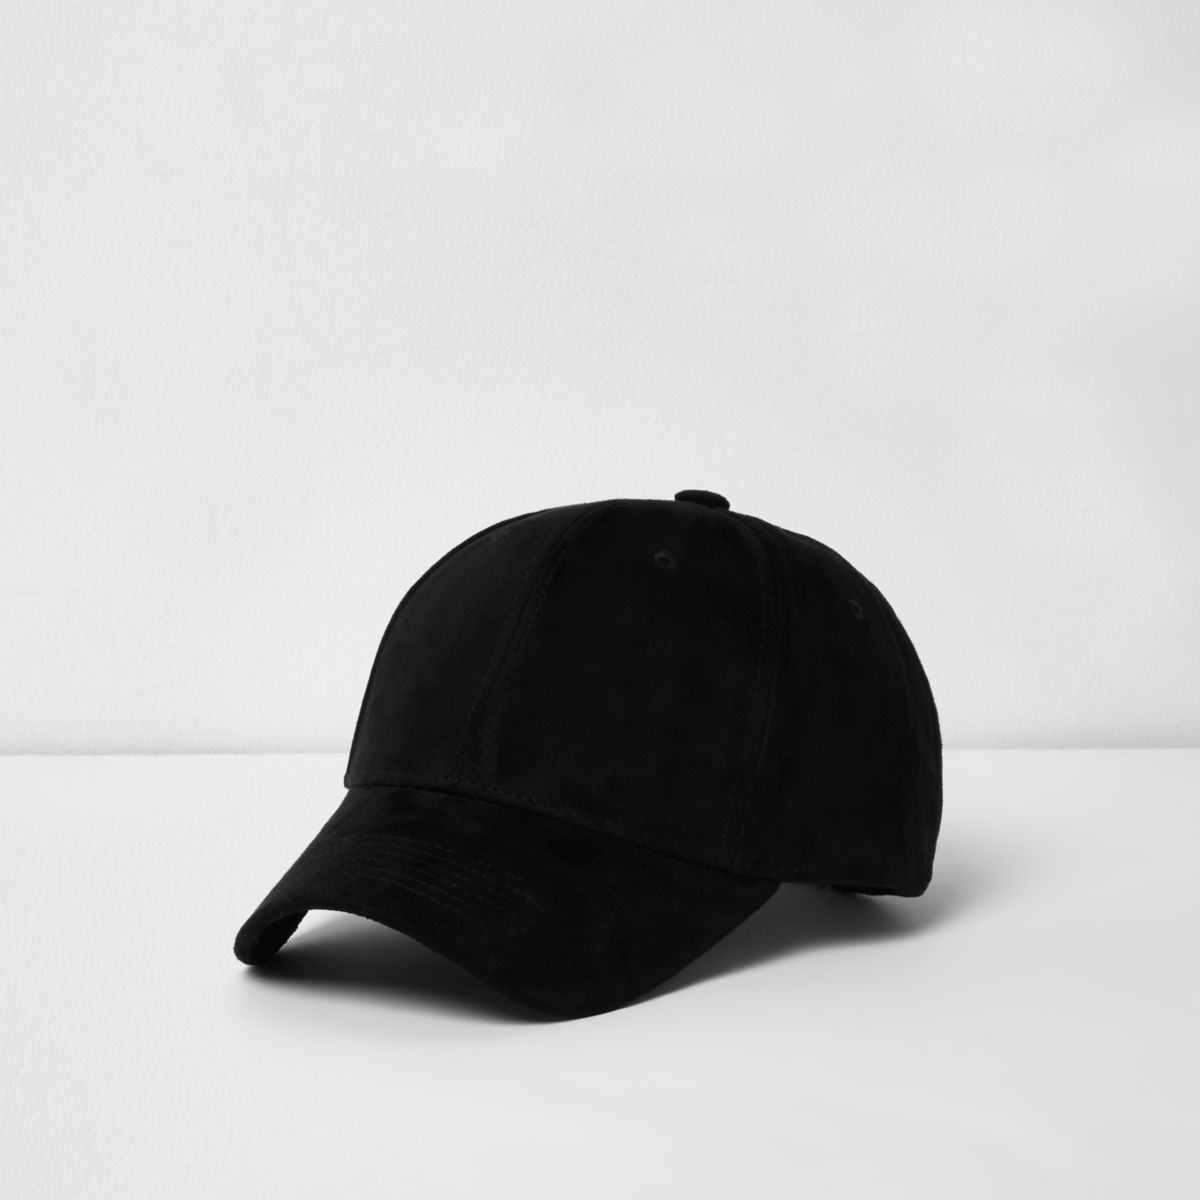 Black faux suede baseball cap